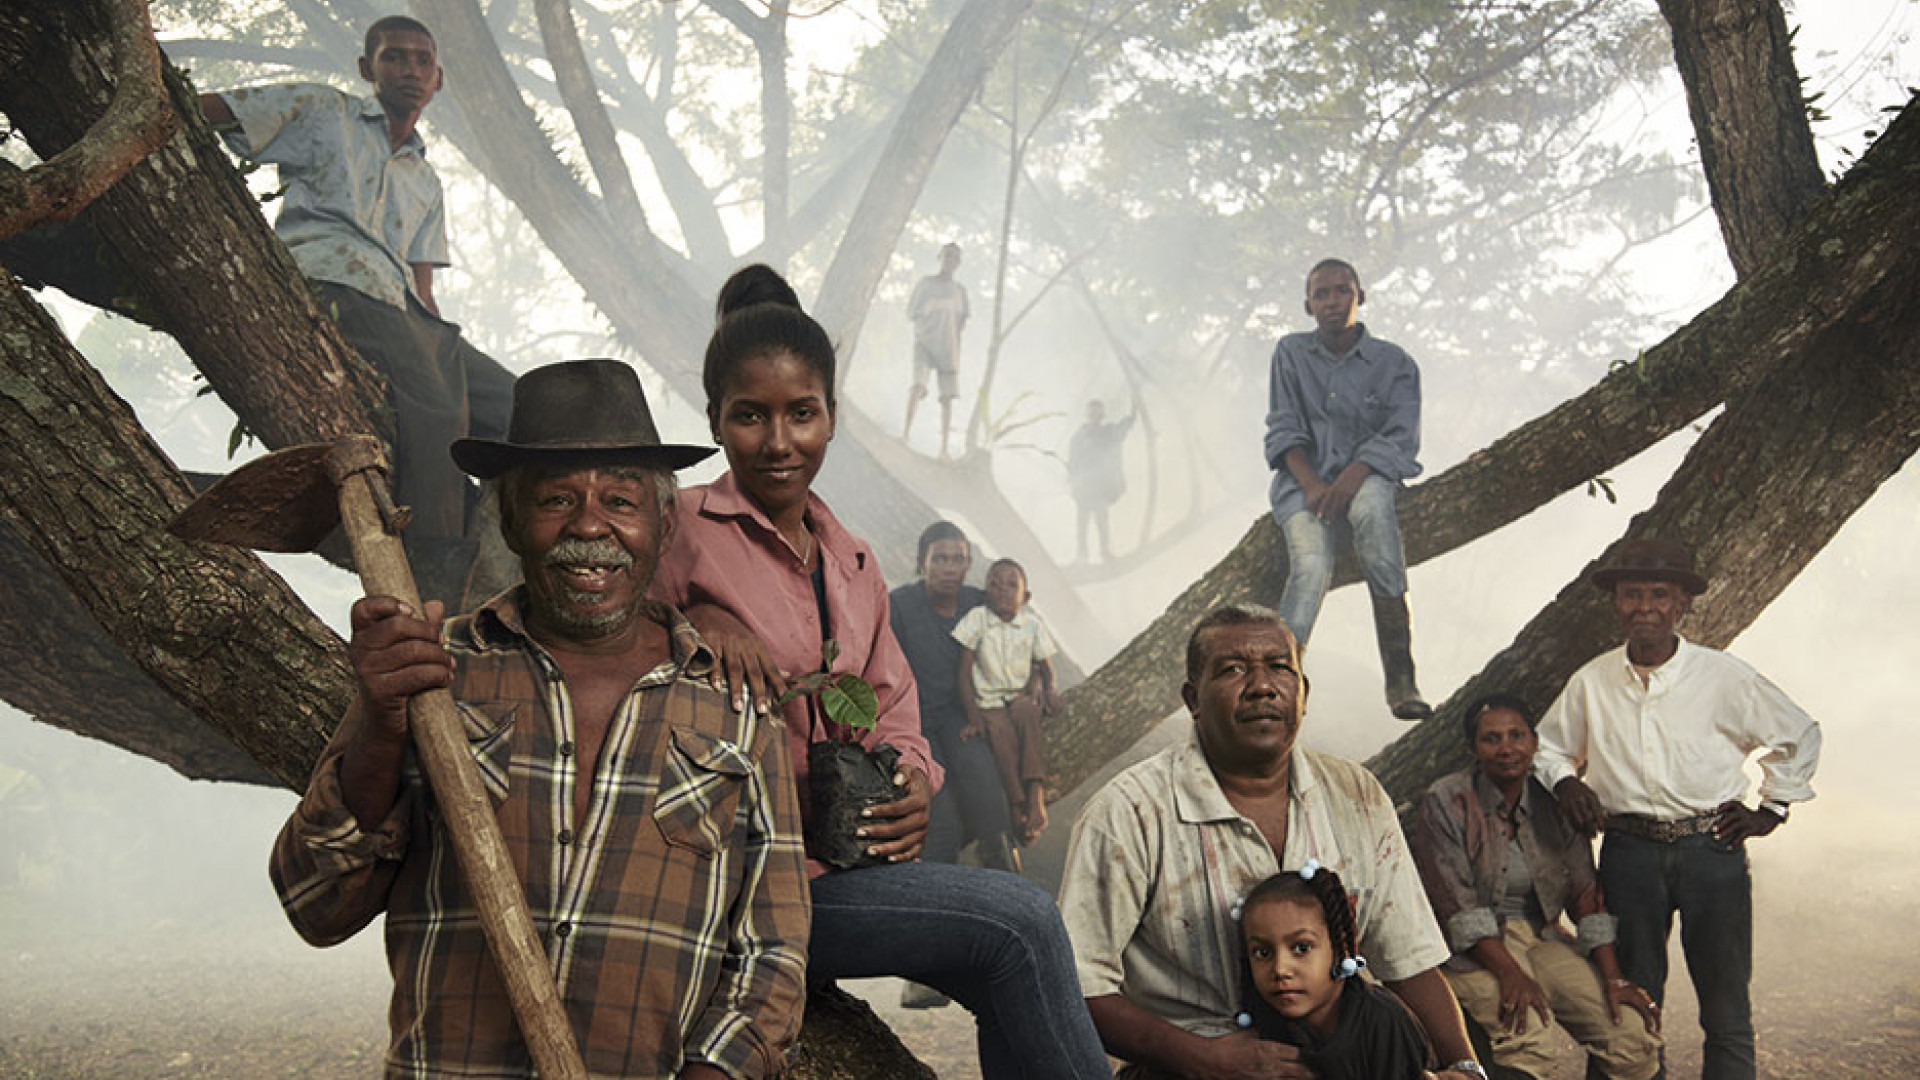 A family of farmers in the mountains of the Dominican Republic